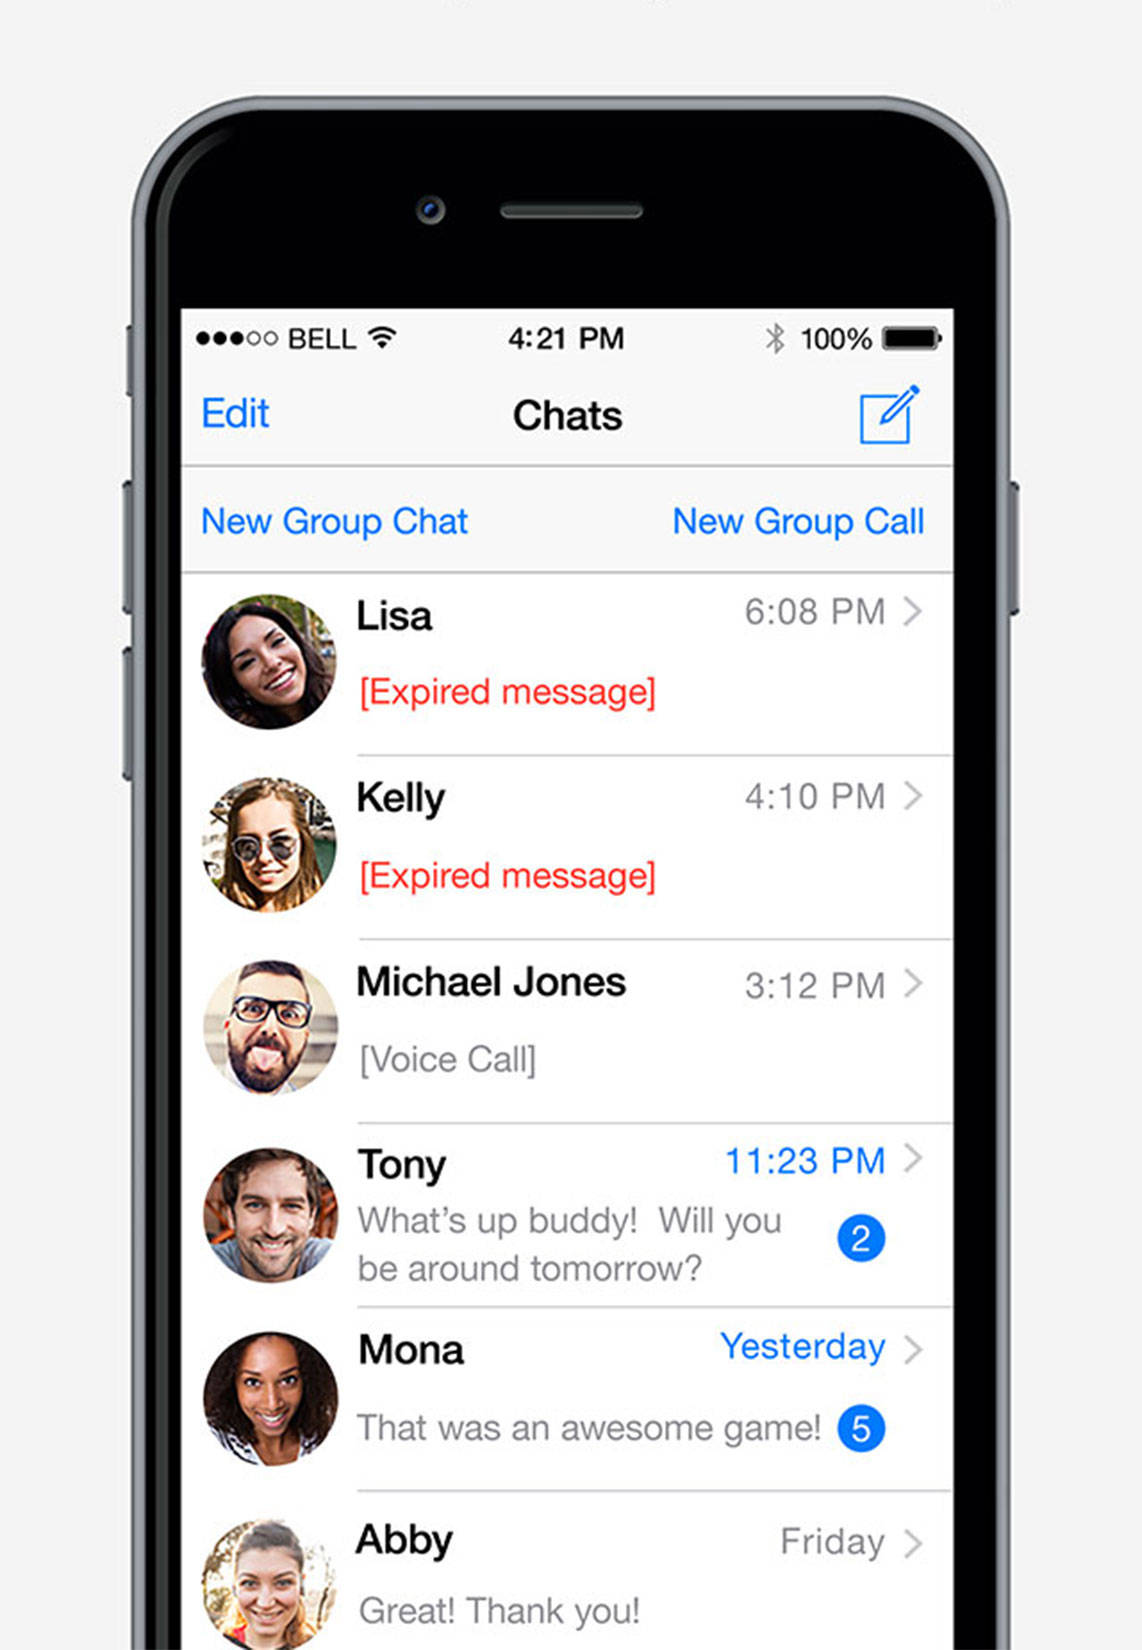 End-to-end encryption keep communications private and group chats can include up to 500 users.